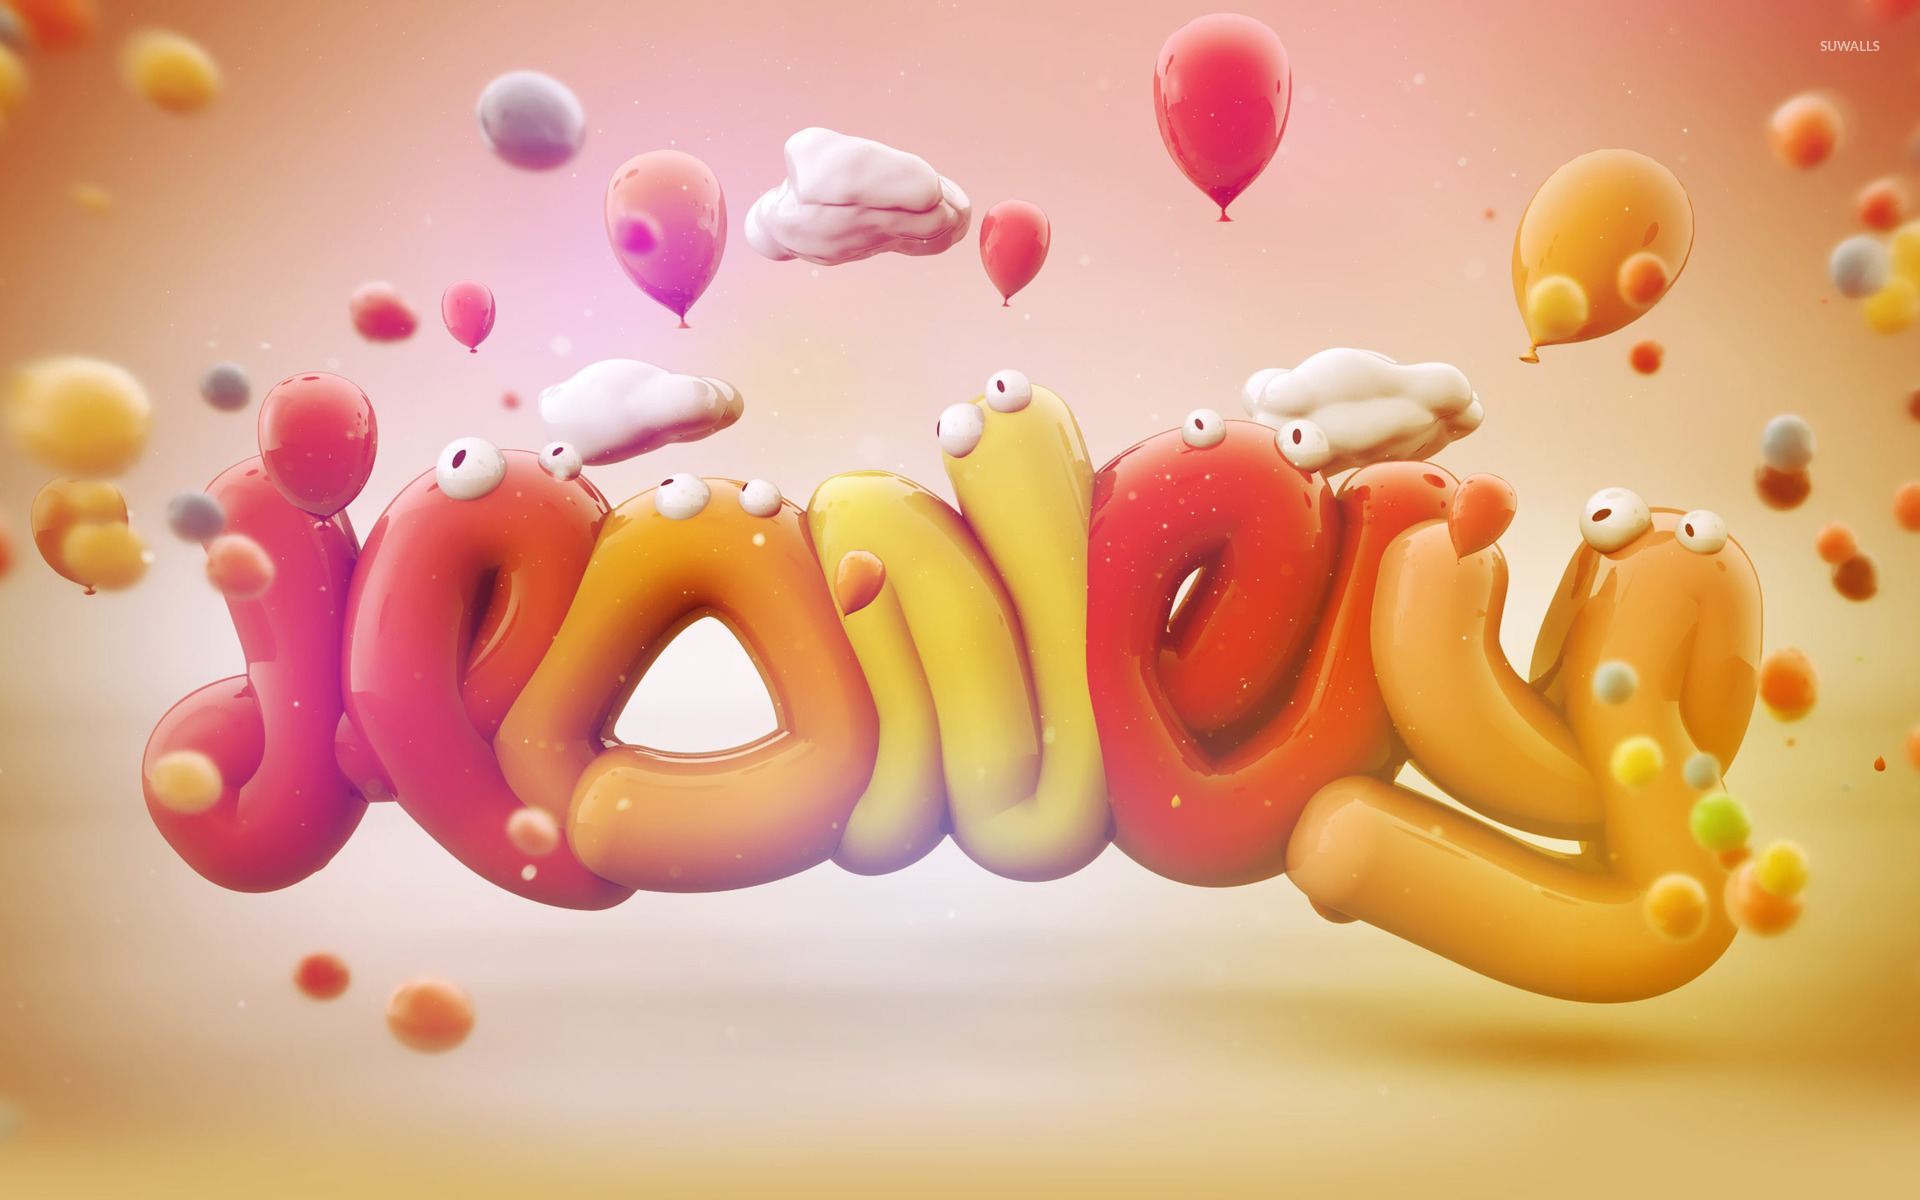 Love Jelly Wallpaper : Jelly worms wallpaper - Typography wallpapers - #19228